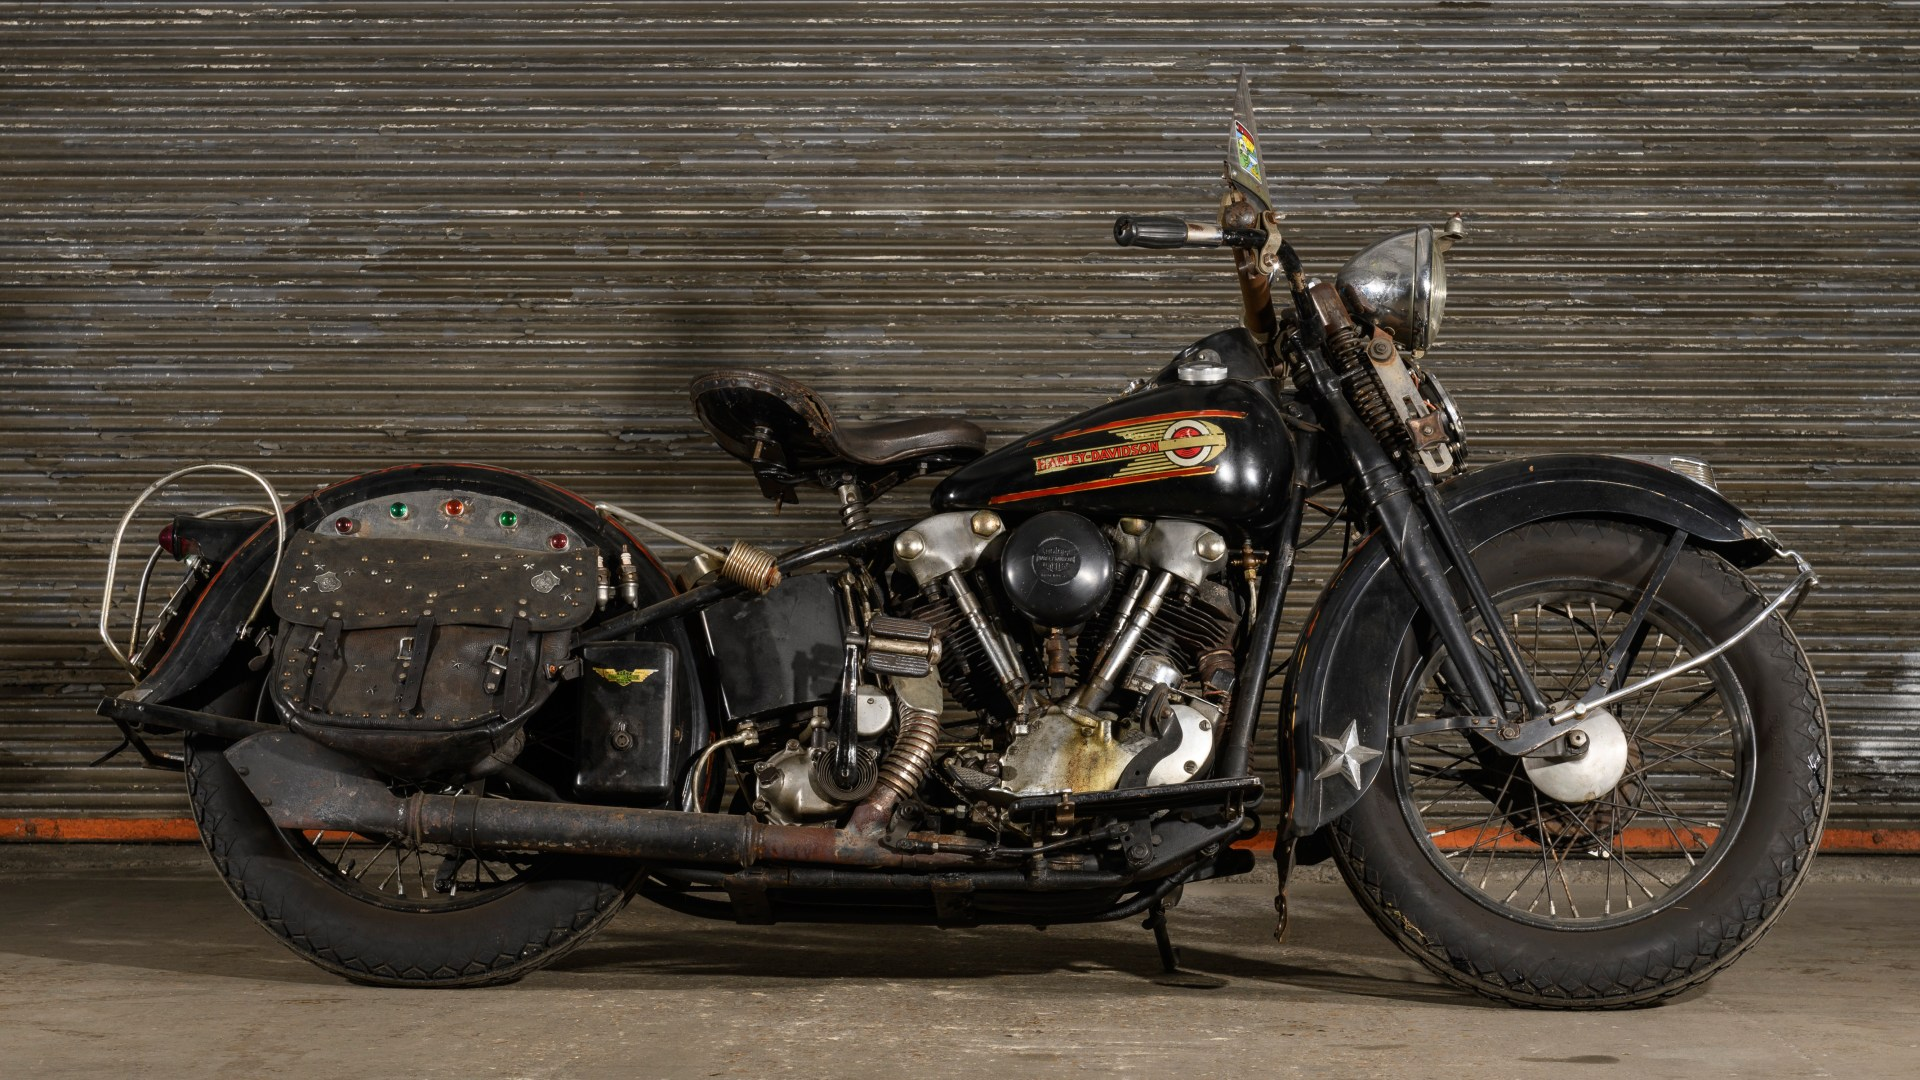 Motorcycle Parts Nashville Tn >> The Dan Auerbach Collection: Vintage Harley-Davidsons from 1937-1950 - The V-Twin Blog